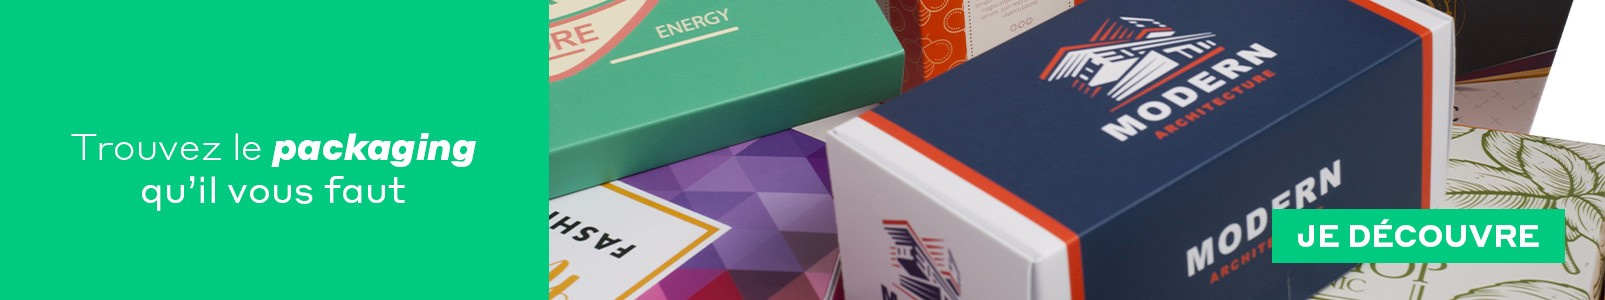 packaging-hp-aout